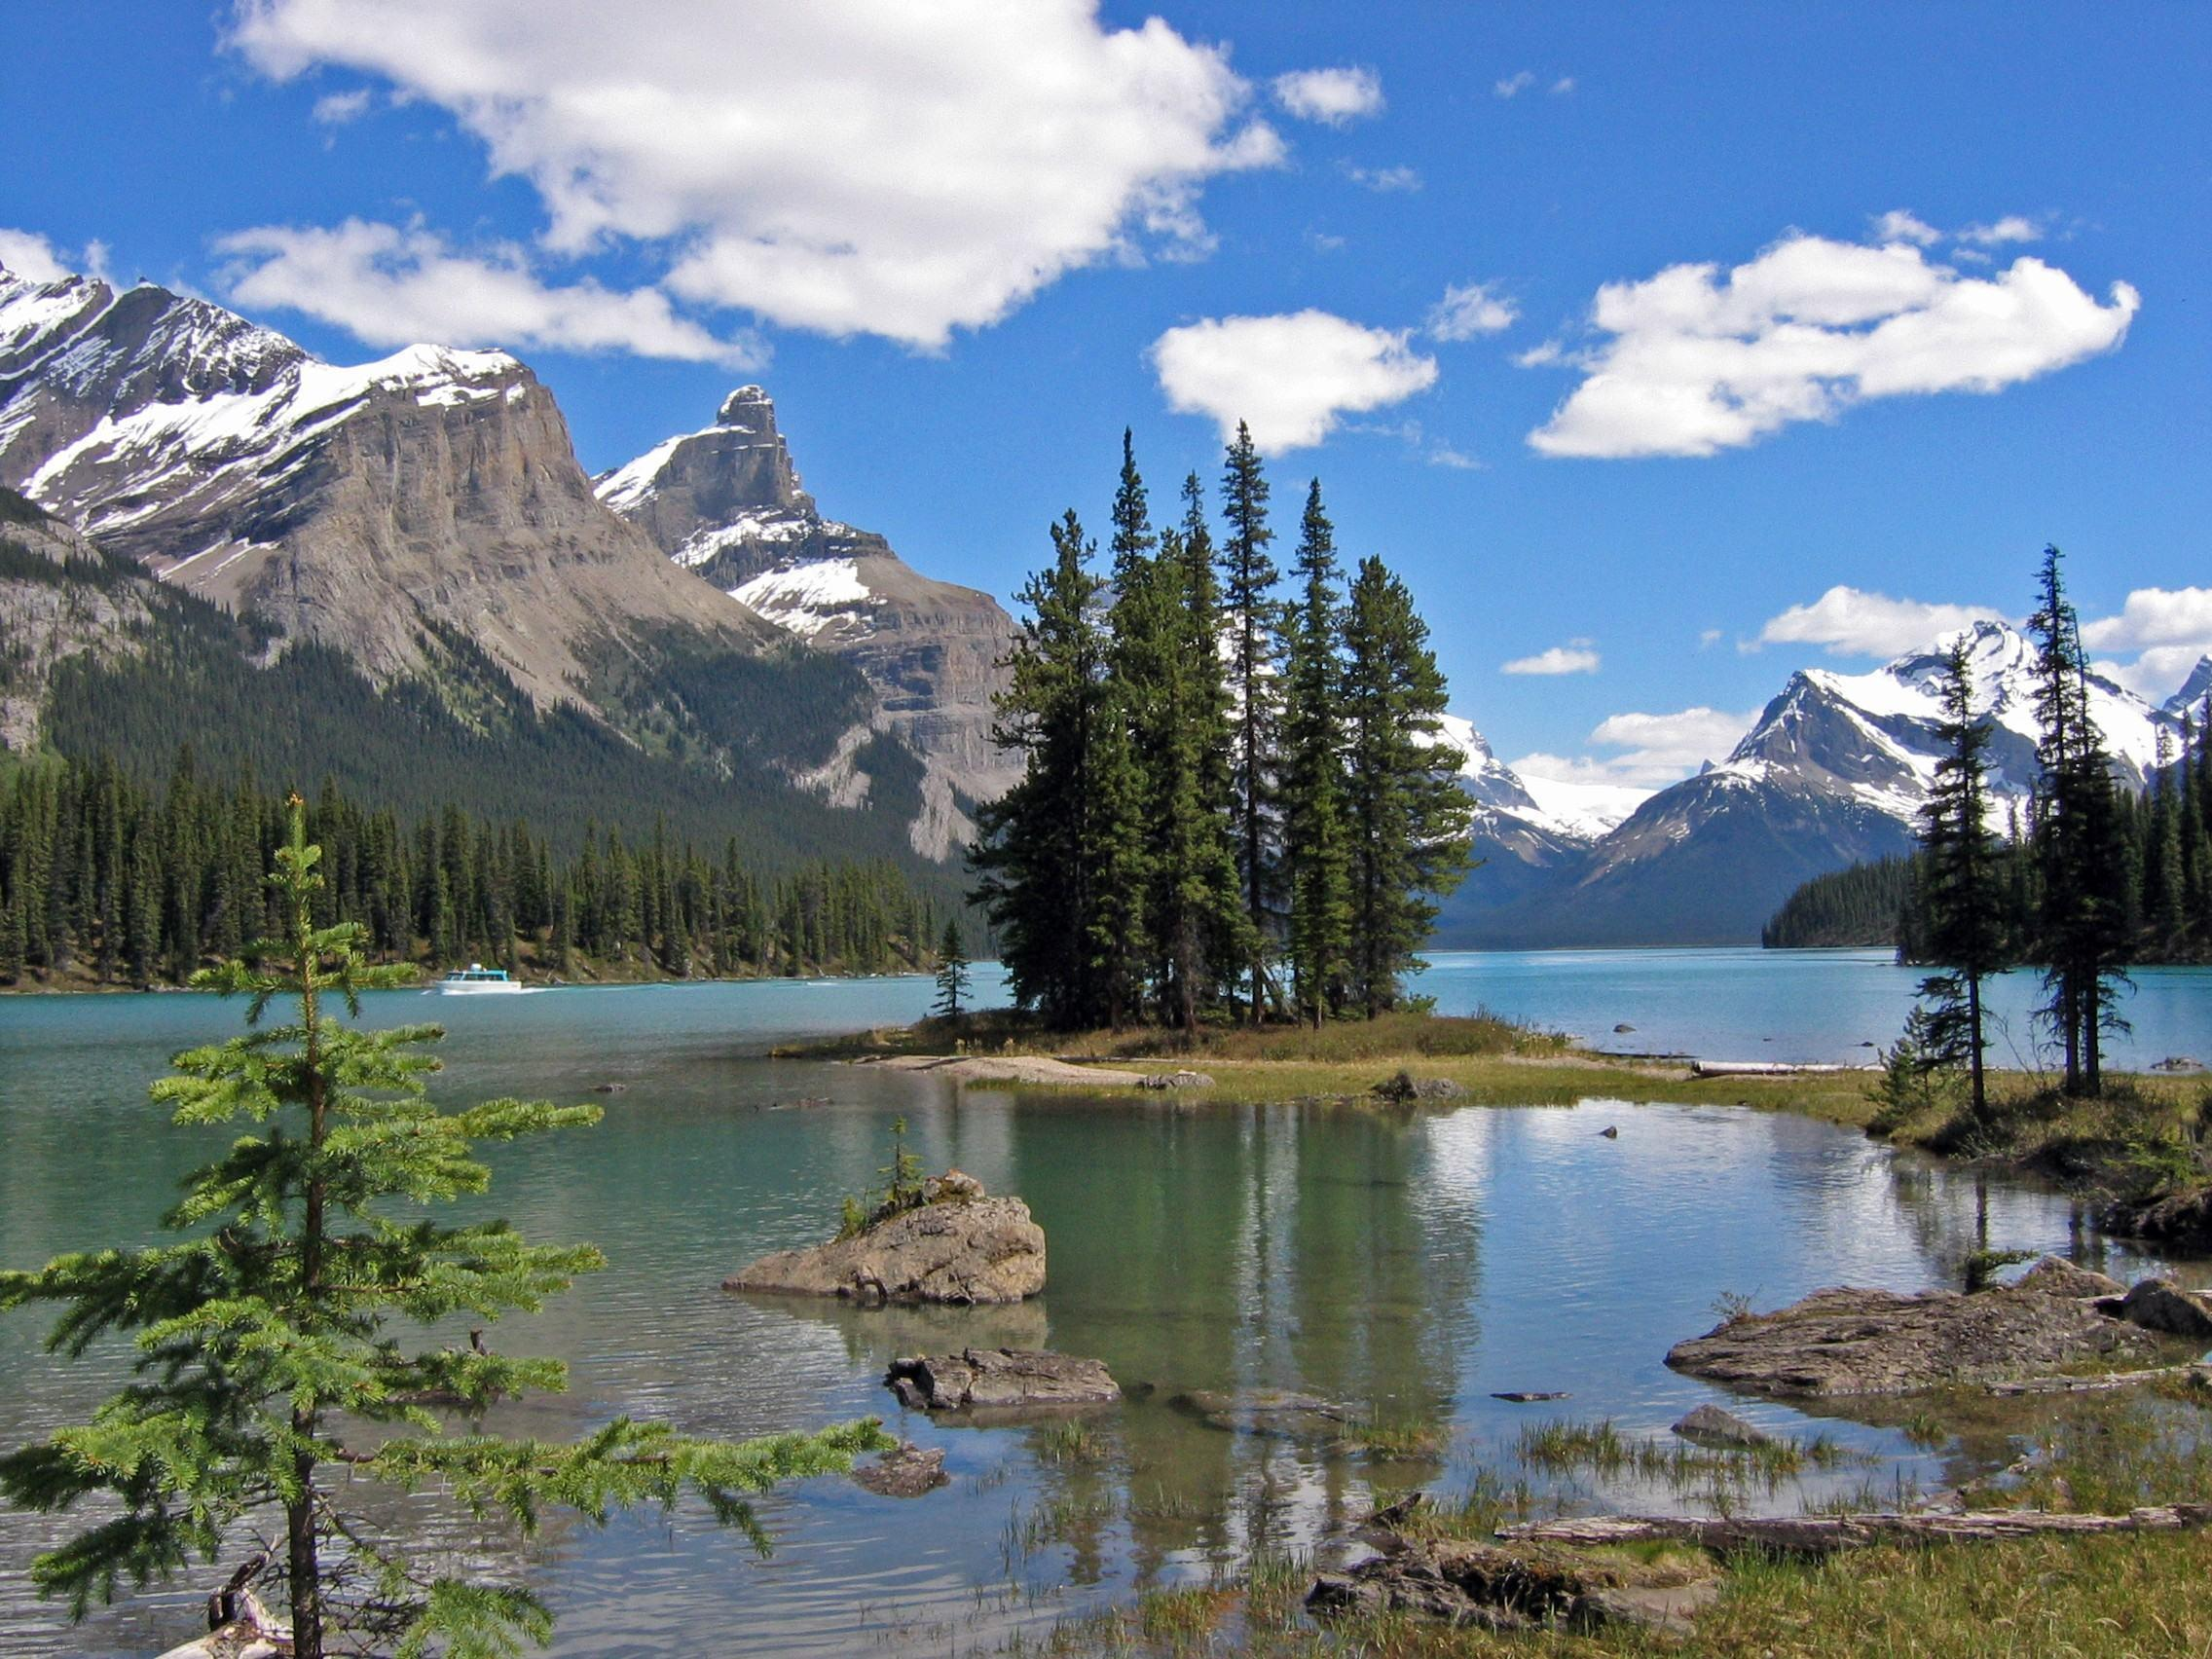 Scenery Wallpapers Backgrounds - Download free Scenery Canada Bea